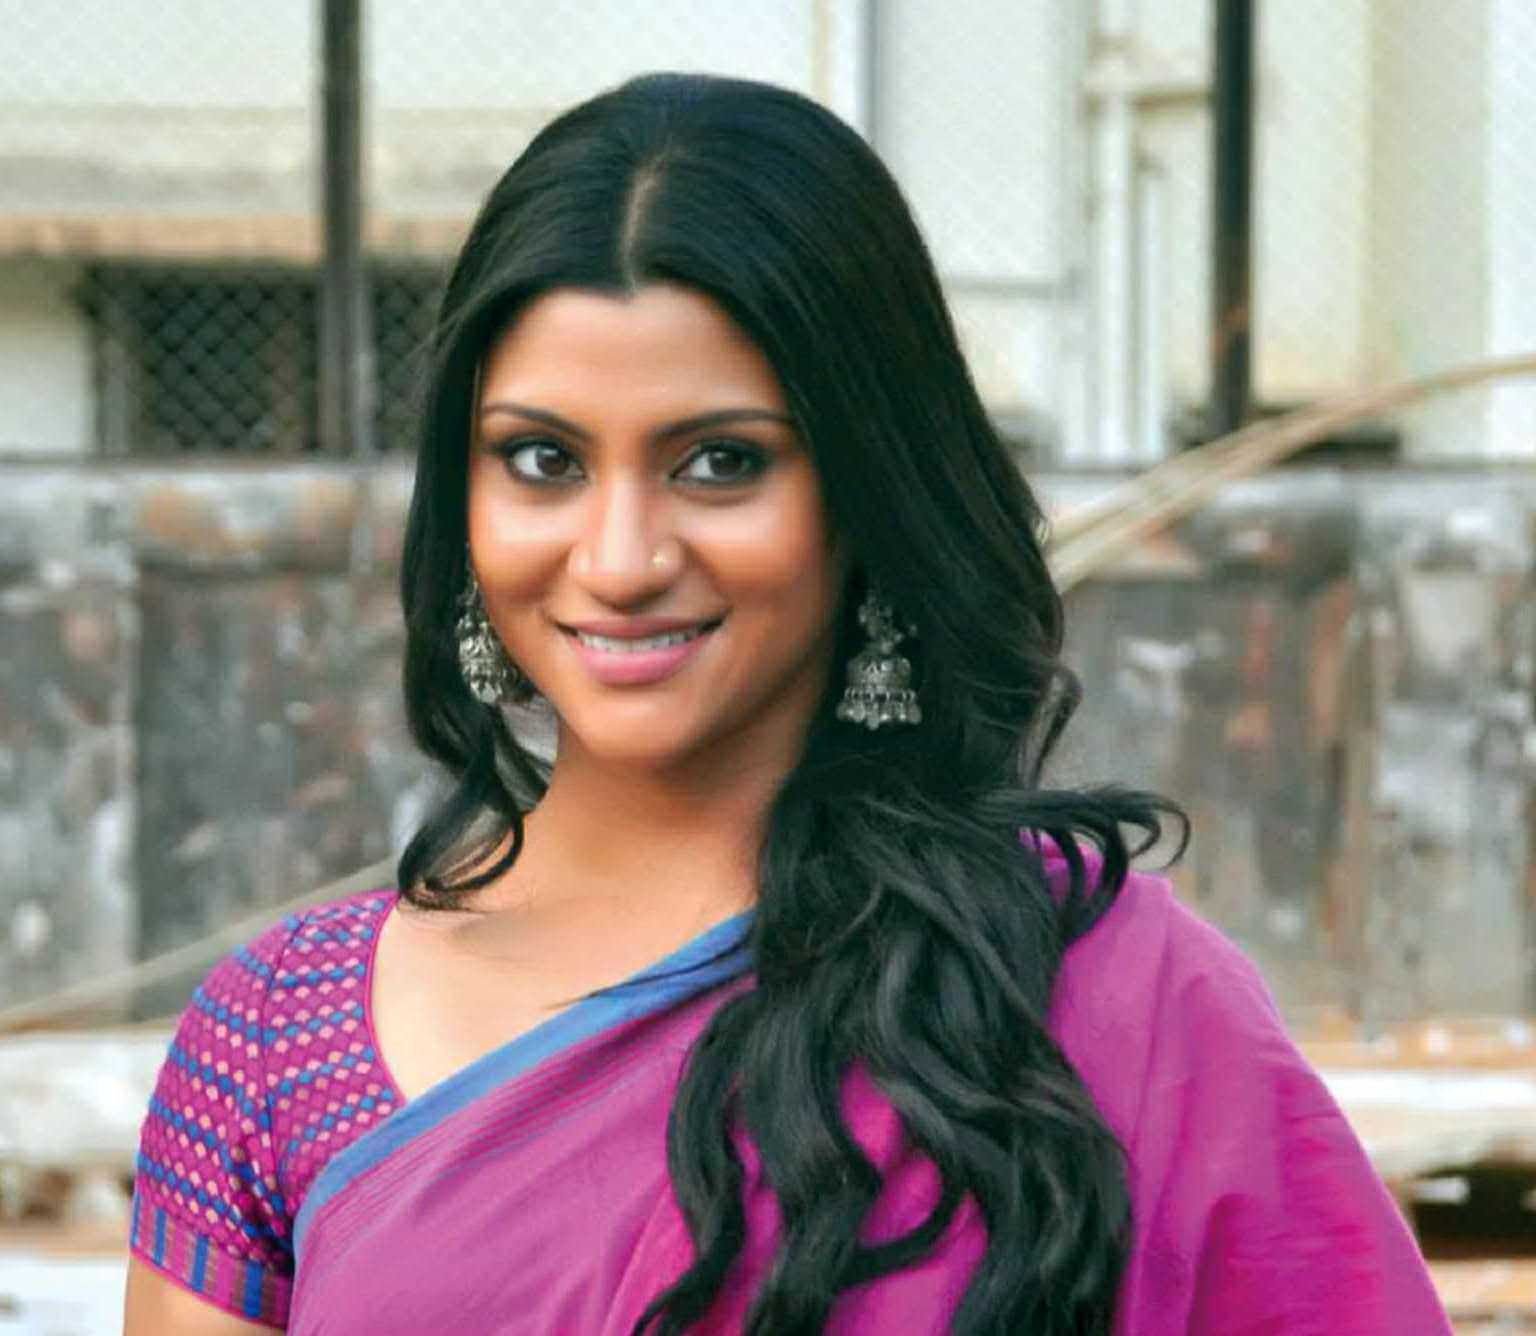 Konkona Sen Sharma nudes (19 photos), Ass, Paparazzi, Selfie, butt 2020